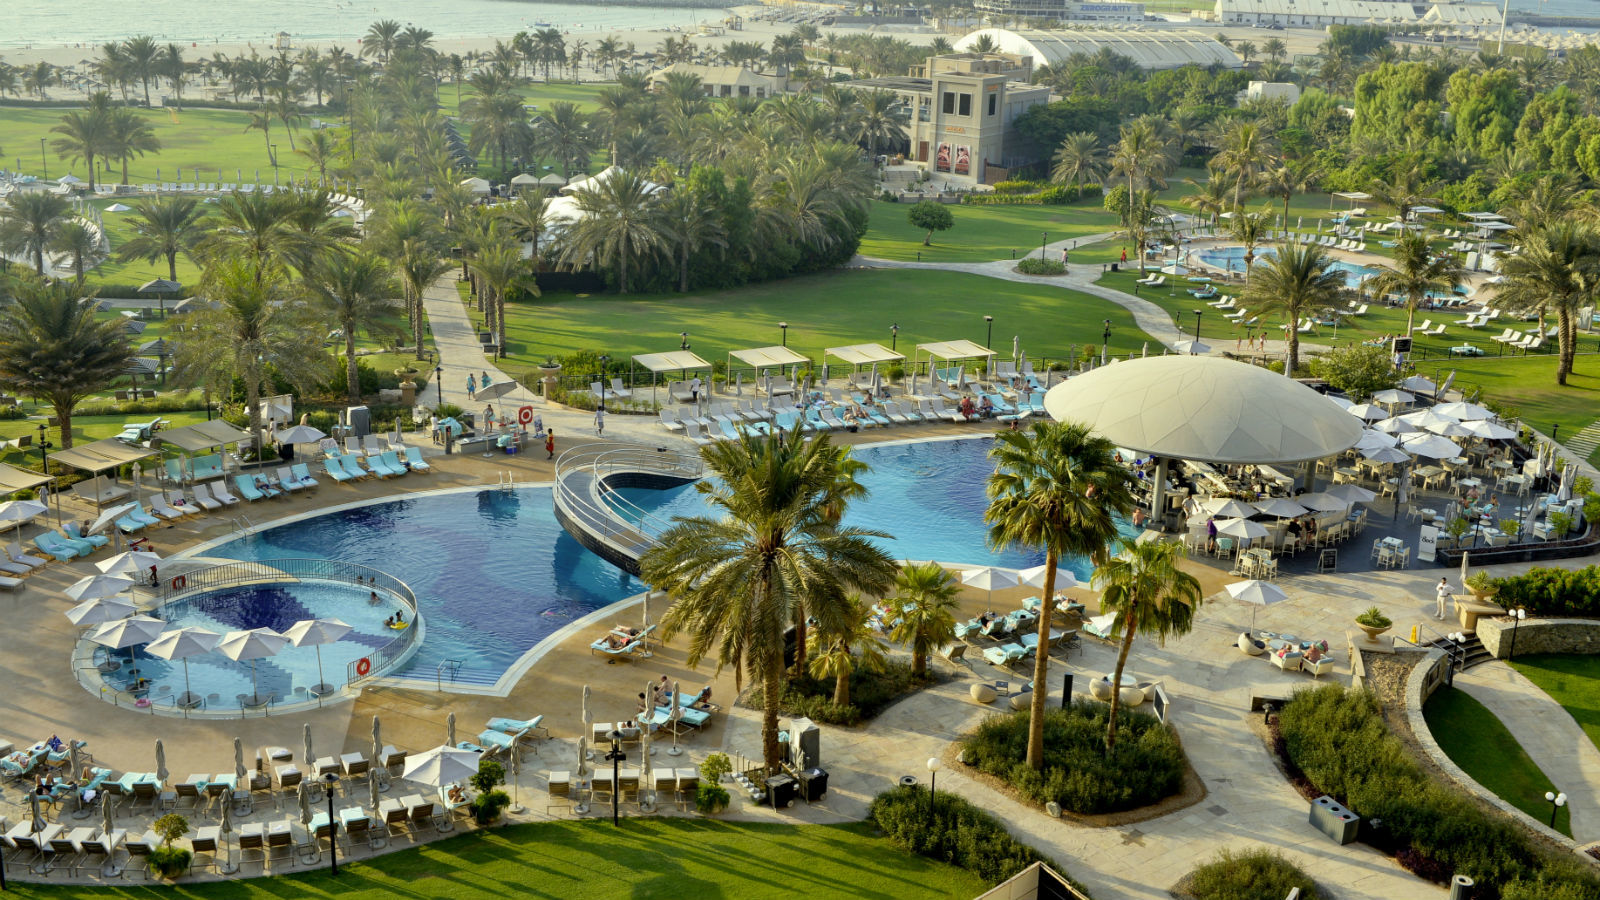 Pool and beach facility for non resident guests le royal for Garden pool dubai